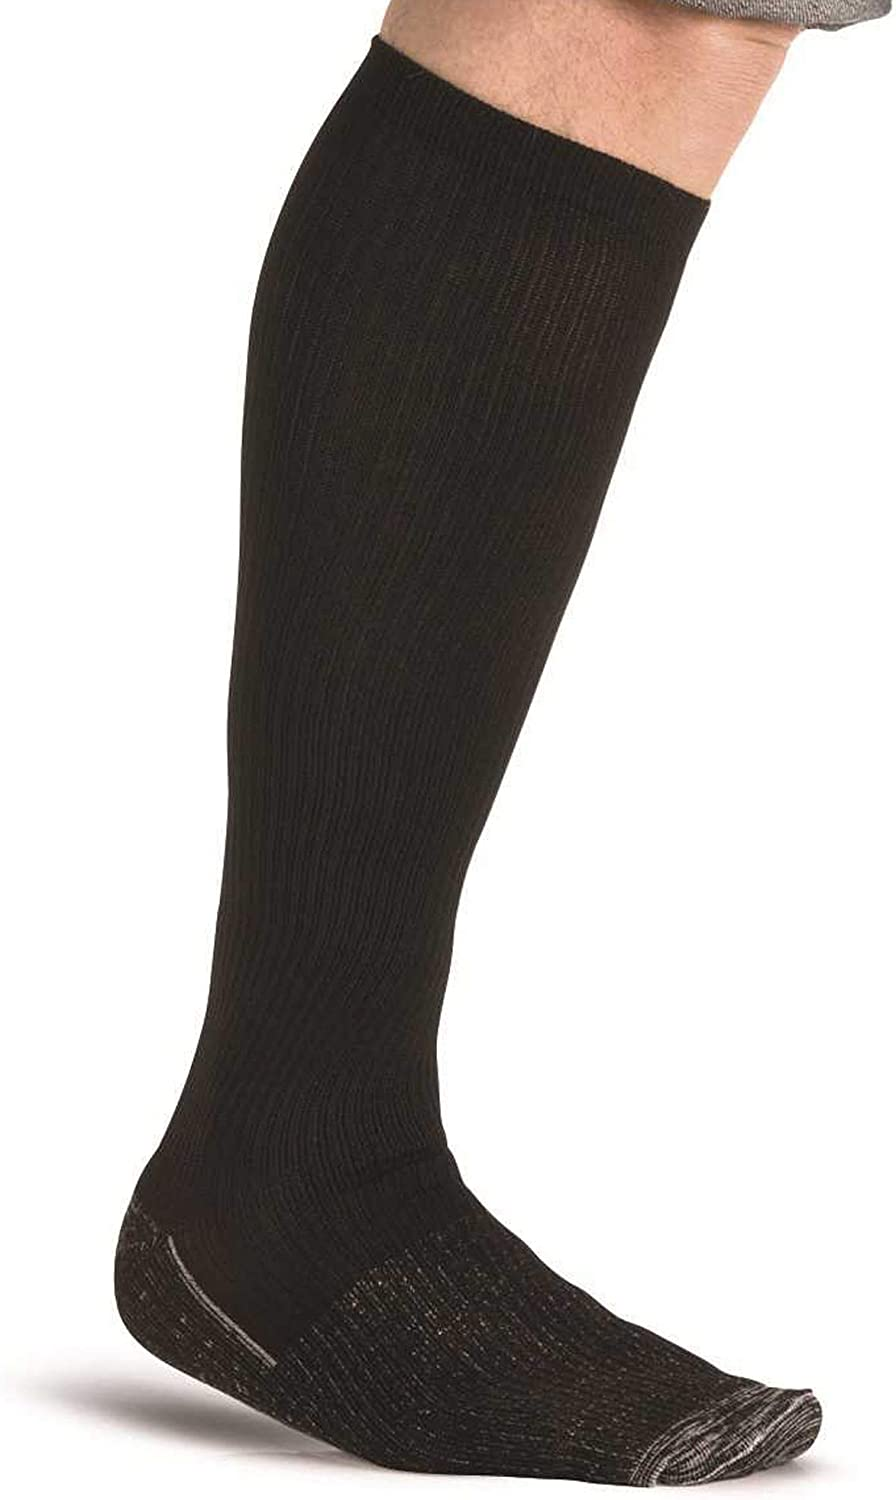 Big and Tall Available EMEM Apparel Men/'s Mild Compression Over the Calf Socks 12-15 mmHg 2-Pack